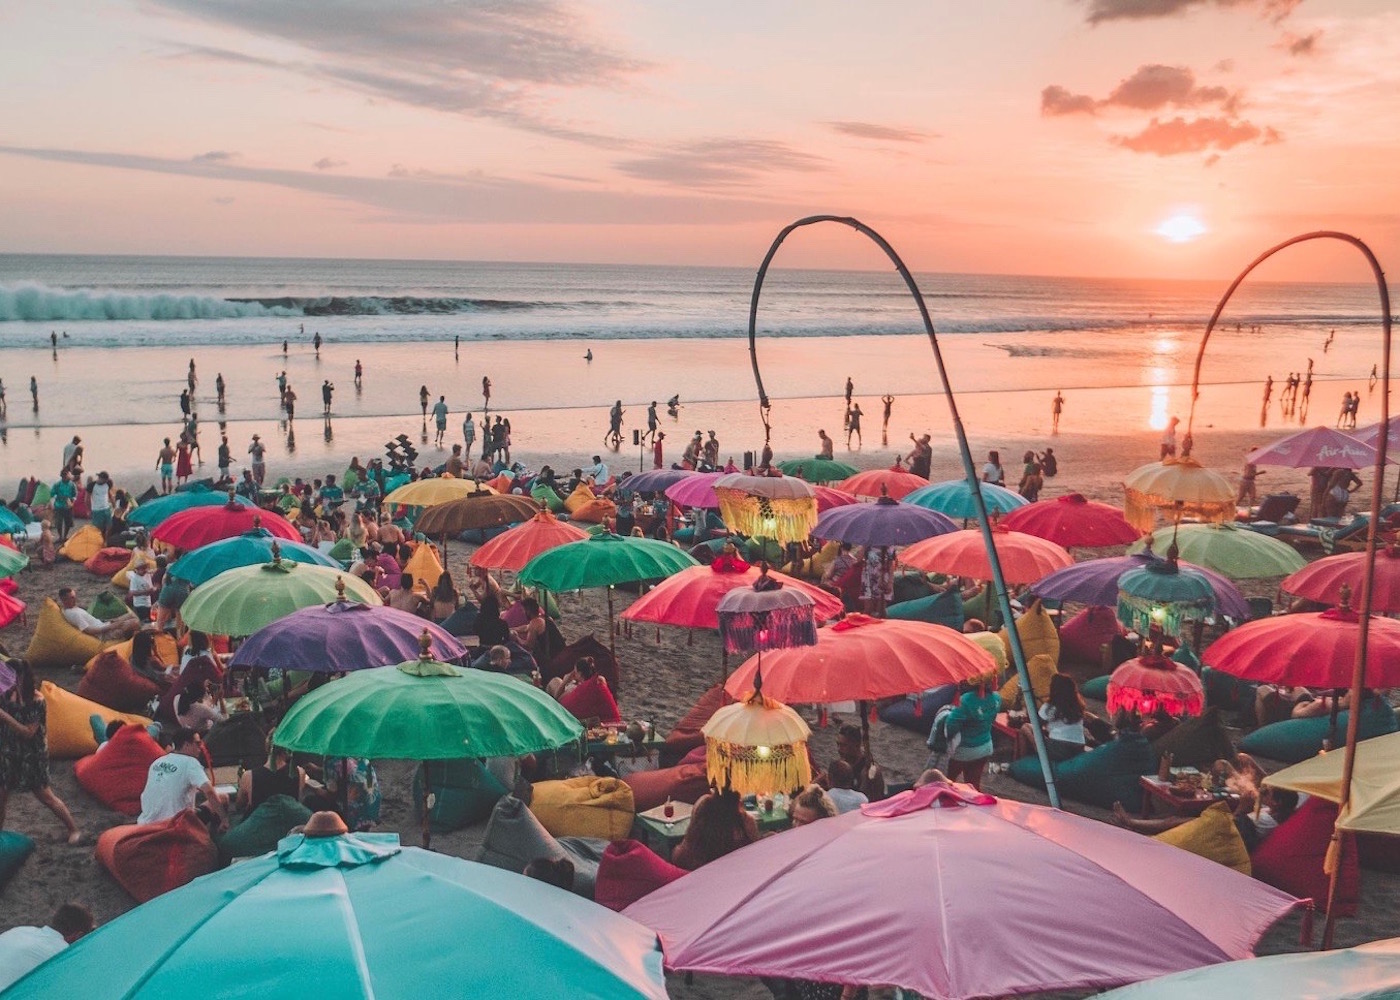 52 awesome things to do in Bali | Honeycombers Bali